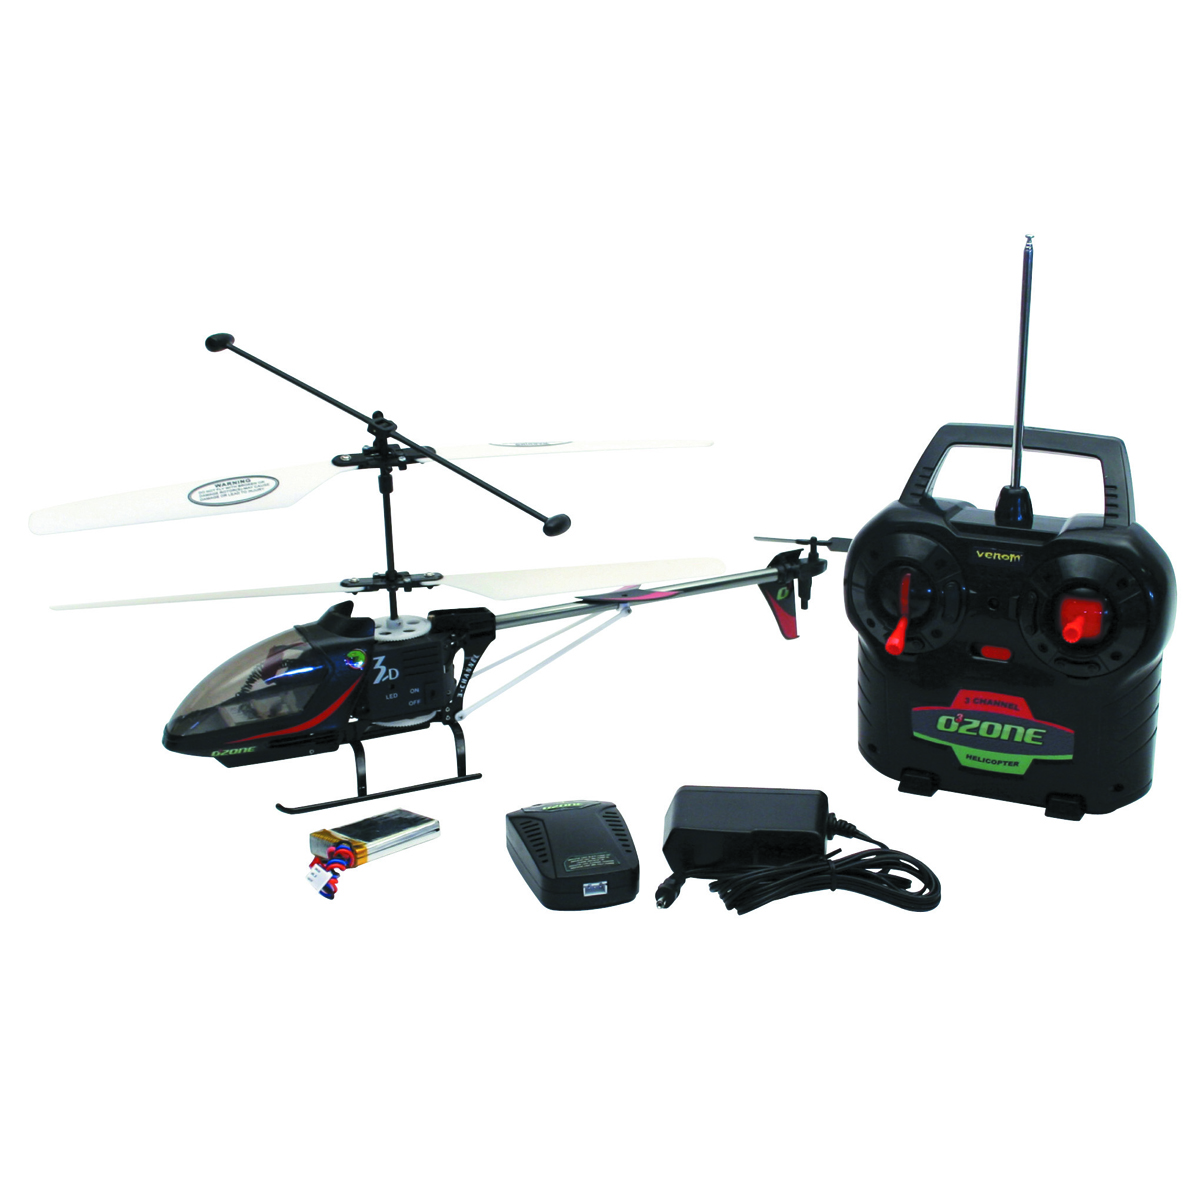 build remote control helicopter with Venom Ozone 3 5 Channel Remote Controlled Helicopter 67092 on Watch also Remote Operated Spy Robot Circuit in addition Watch in addition Nitro Or Gt15hz Goblin 700 Prototype together with Venom Ozone 3 5 Channel Remote Controlled Helicopter 67092.